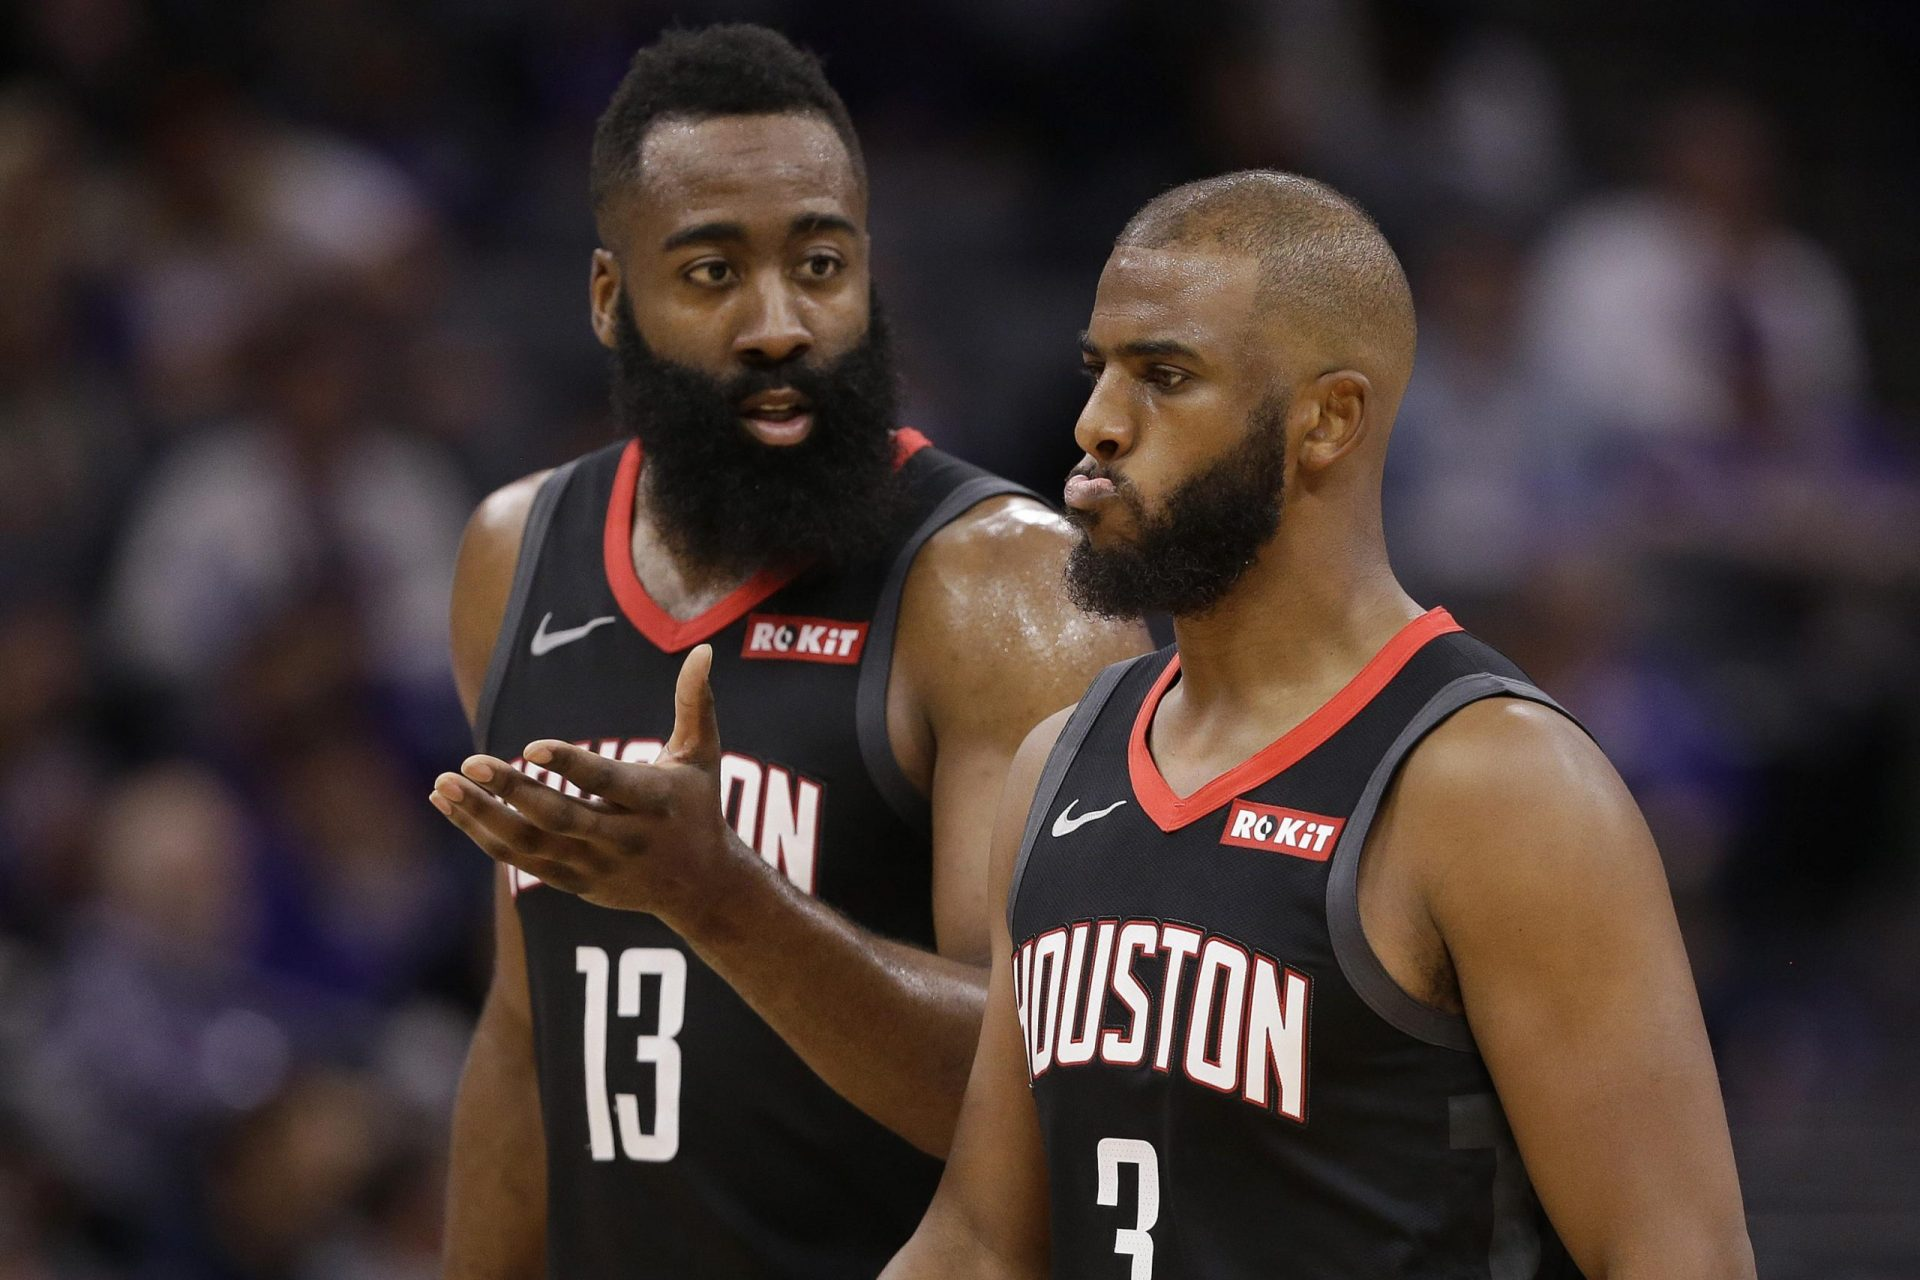 Chris Paul rates James Harden as the best scorer in the NBA